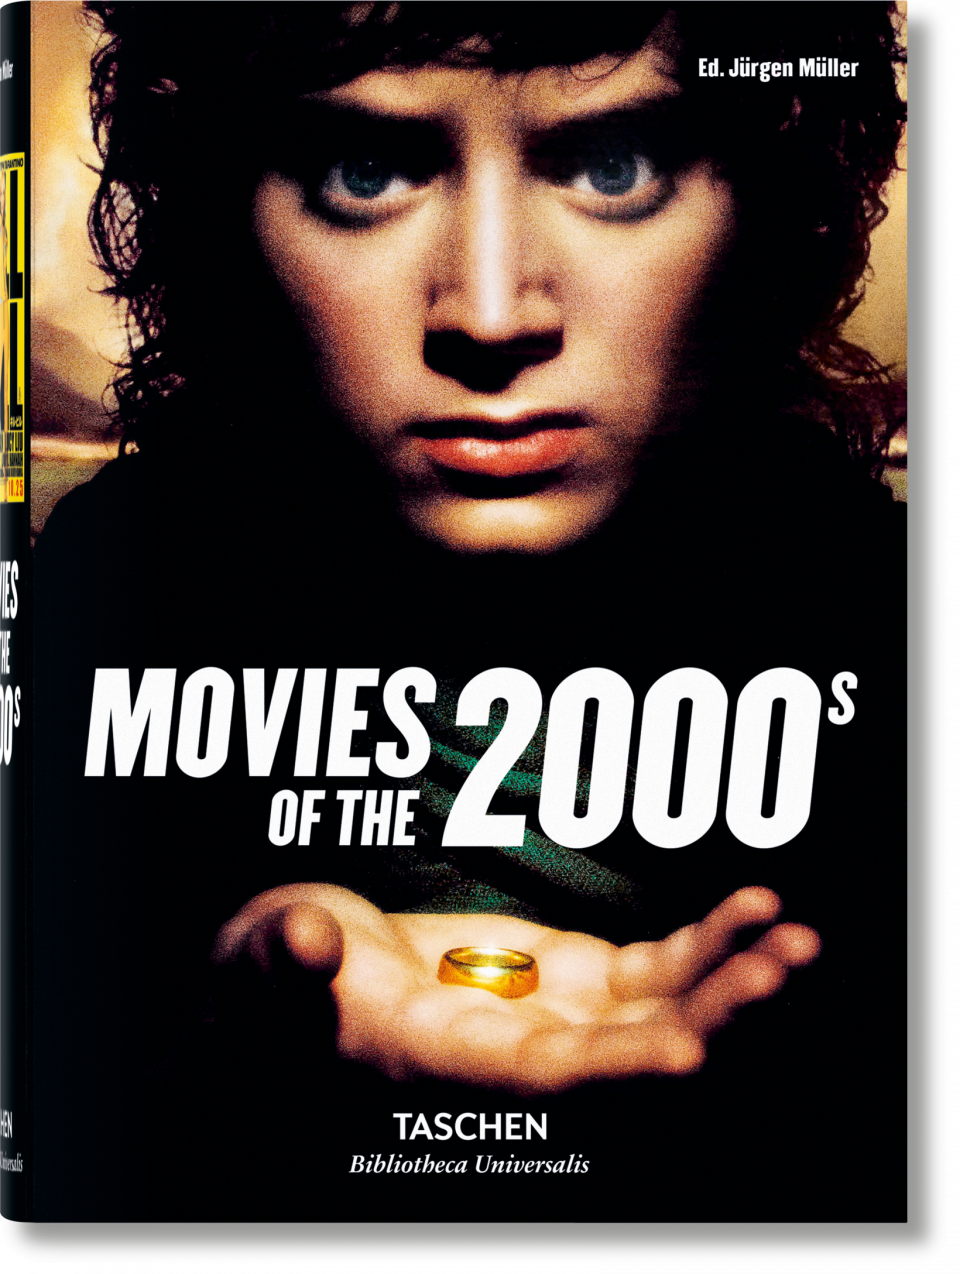 Image result for movies 2000s